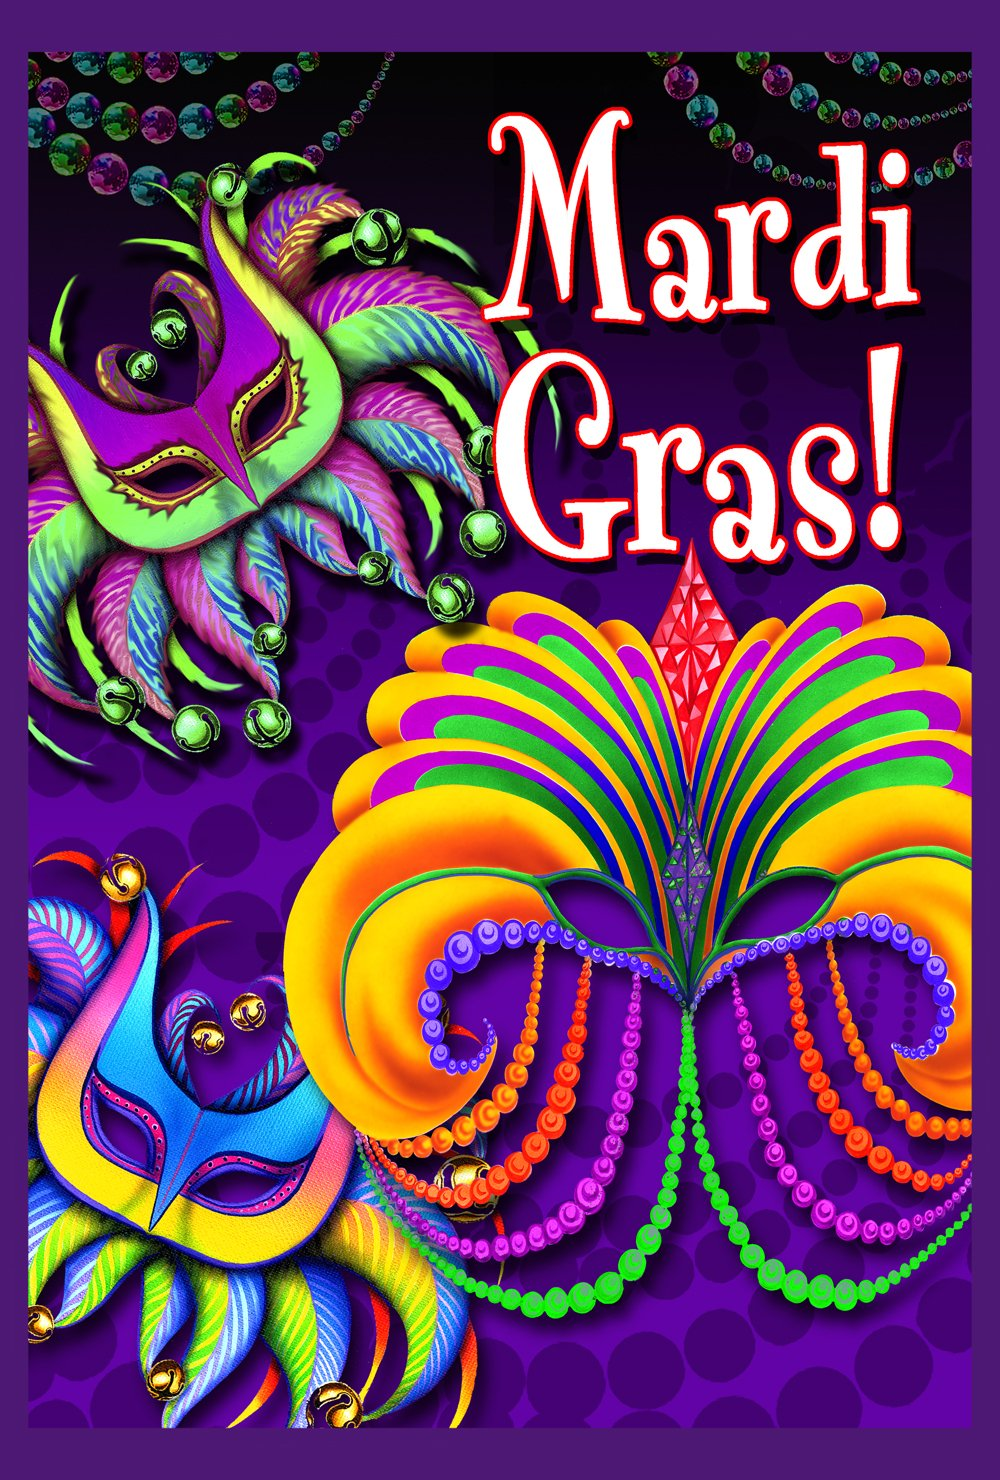 Toland Home Garden Happy Mardi Gras 12.5 x 18 Inch Decorative Mask Beads Double Sided Garden Flag